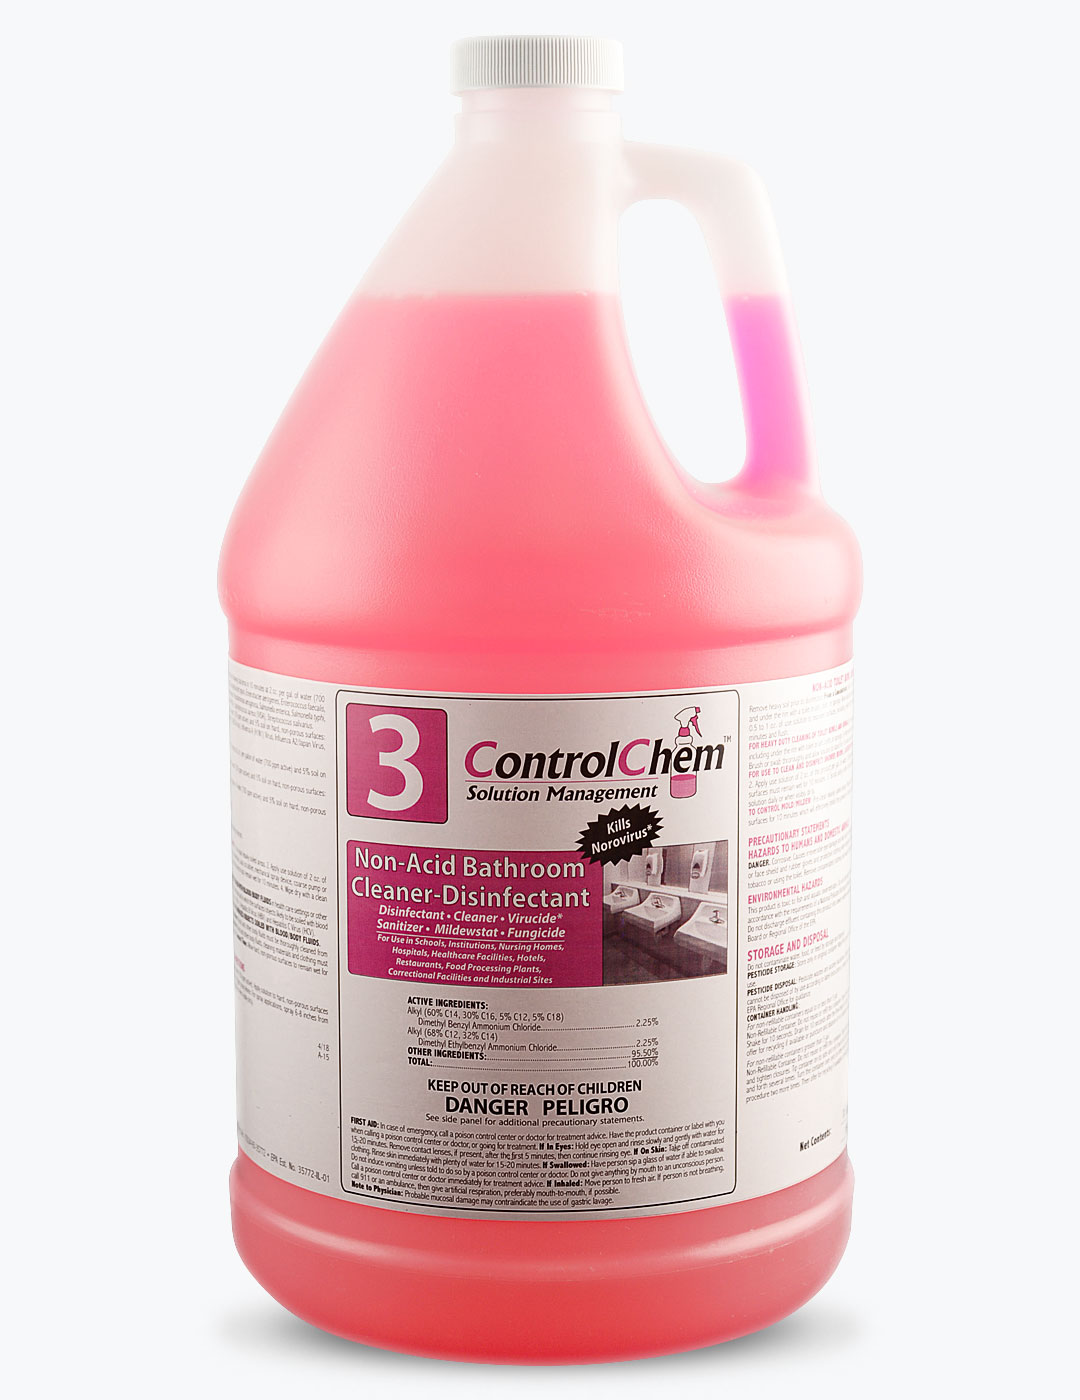 ControlChem #3 Non-Acid Bathroom Cleaner-Disinfectant